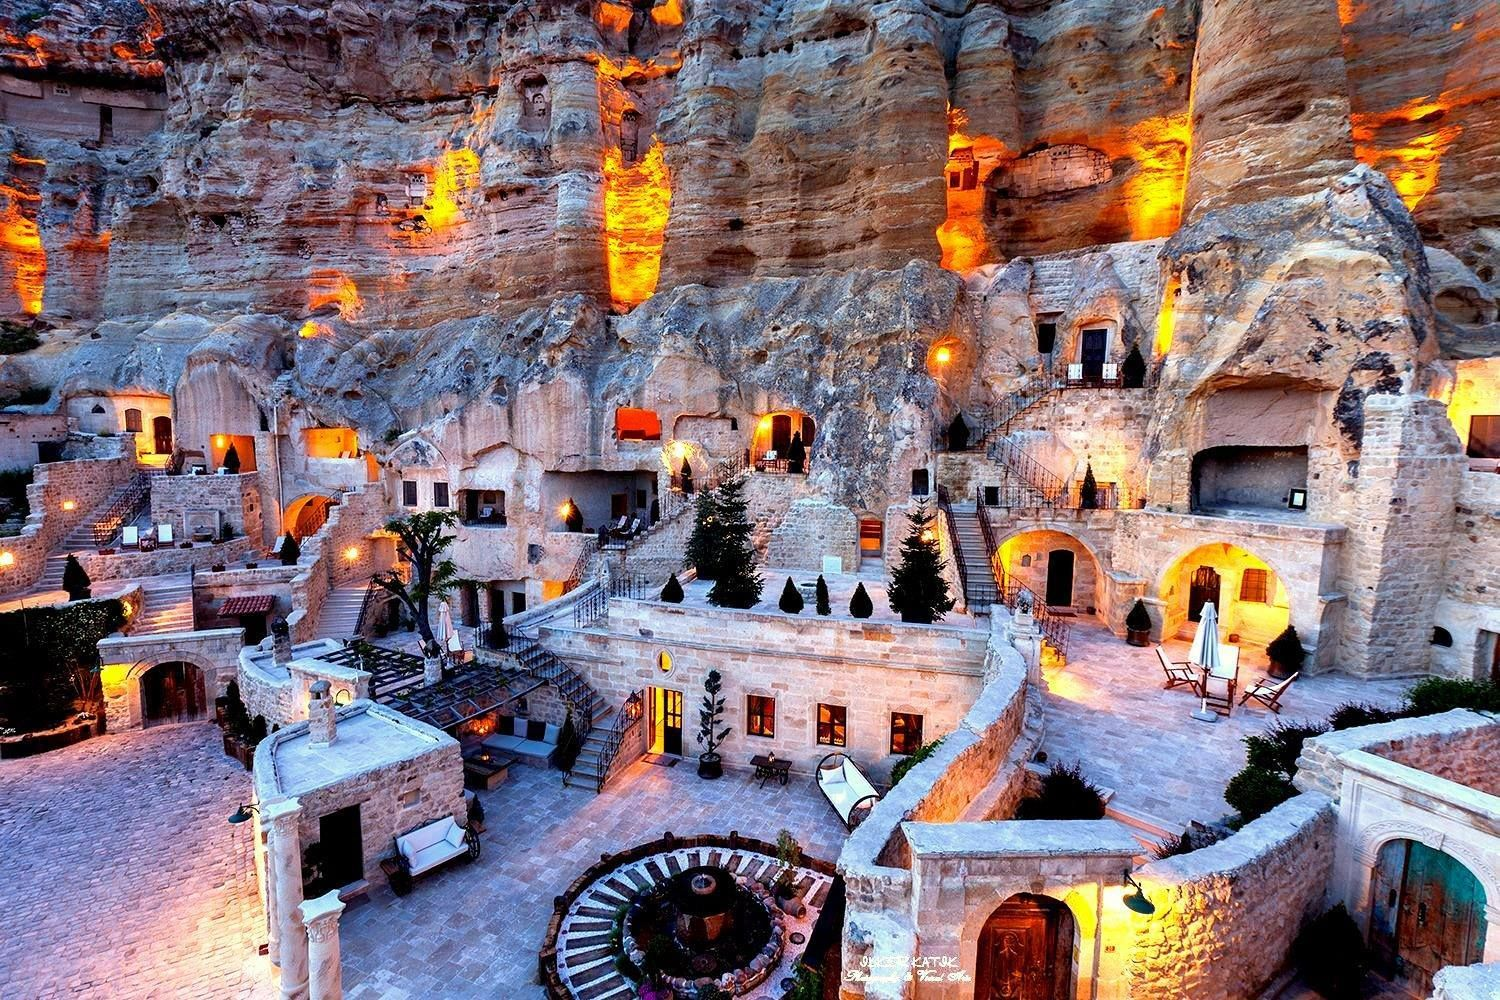 Cappadocia Cave Hotel Turkey Yunak Evleri With 30 Deluxe Rooms And Suites Is Located In Cappadocias Magical Landscape Of Fairy Chimneys